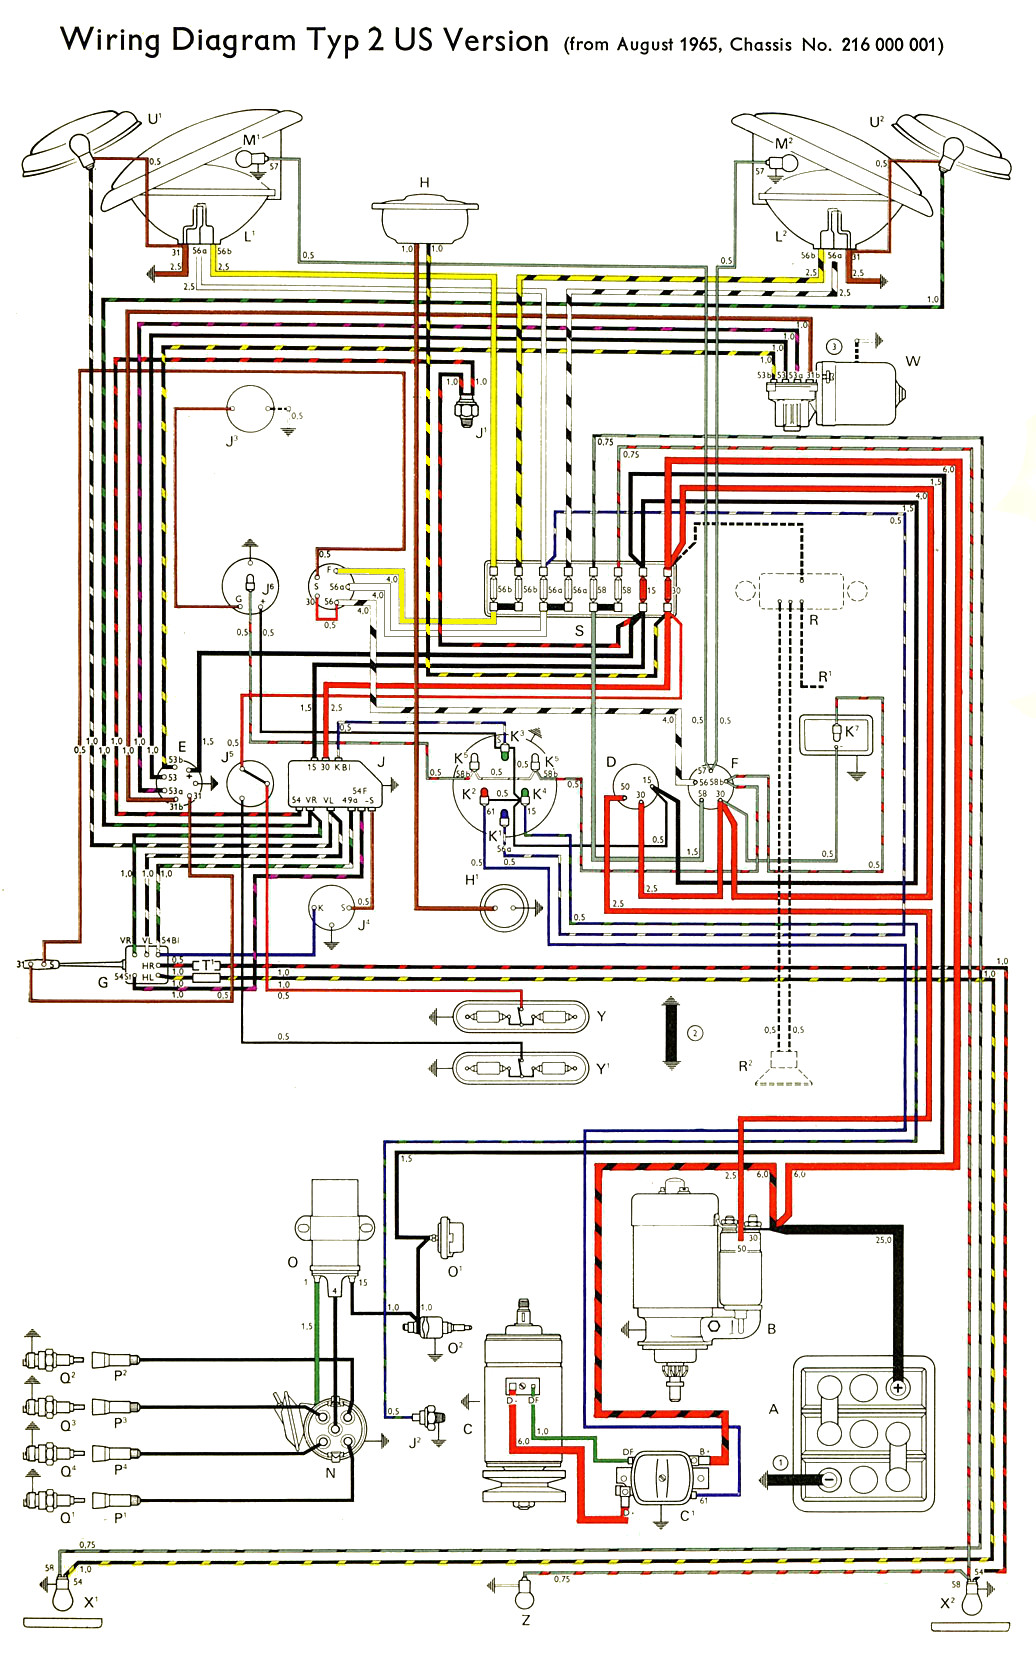 thesamba :: type 2 wiring diagrams, Wiring diagram